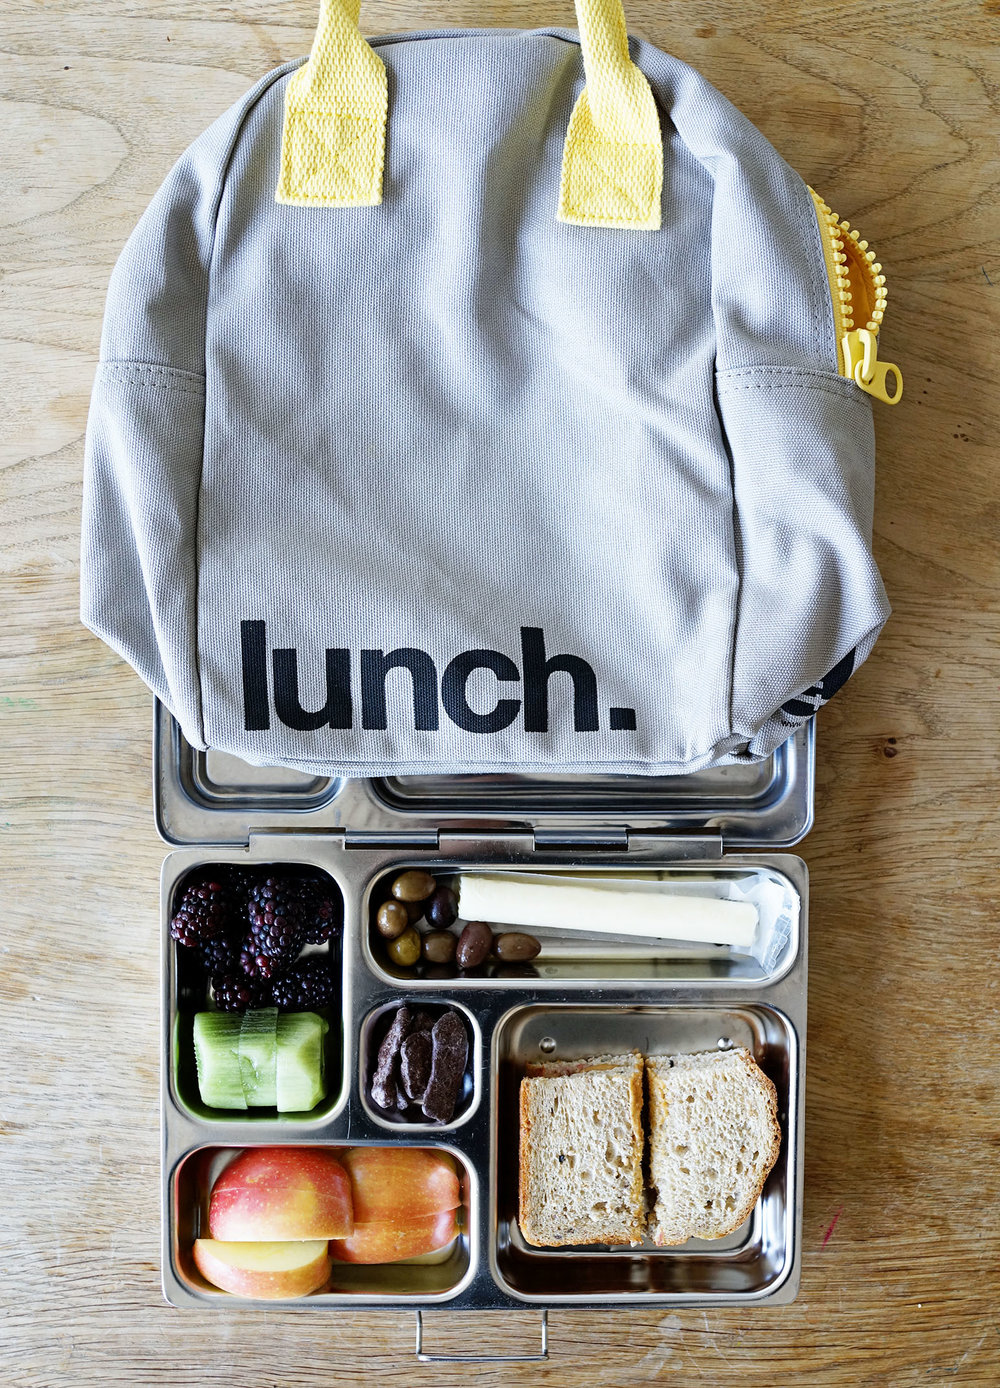 Favorites: School Lunches With Fluf Lunch Bags  /  www.goodonpaperdesign.com/blog/2017/3/27/favorites-school-lunches-with-fluf-lunch-bags  /  @good_on_paper